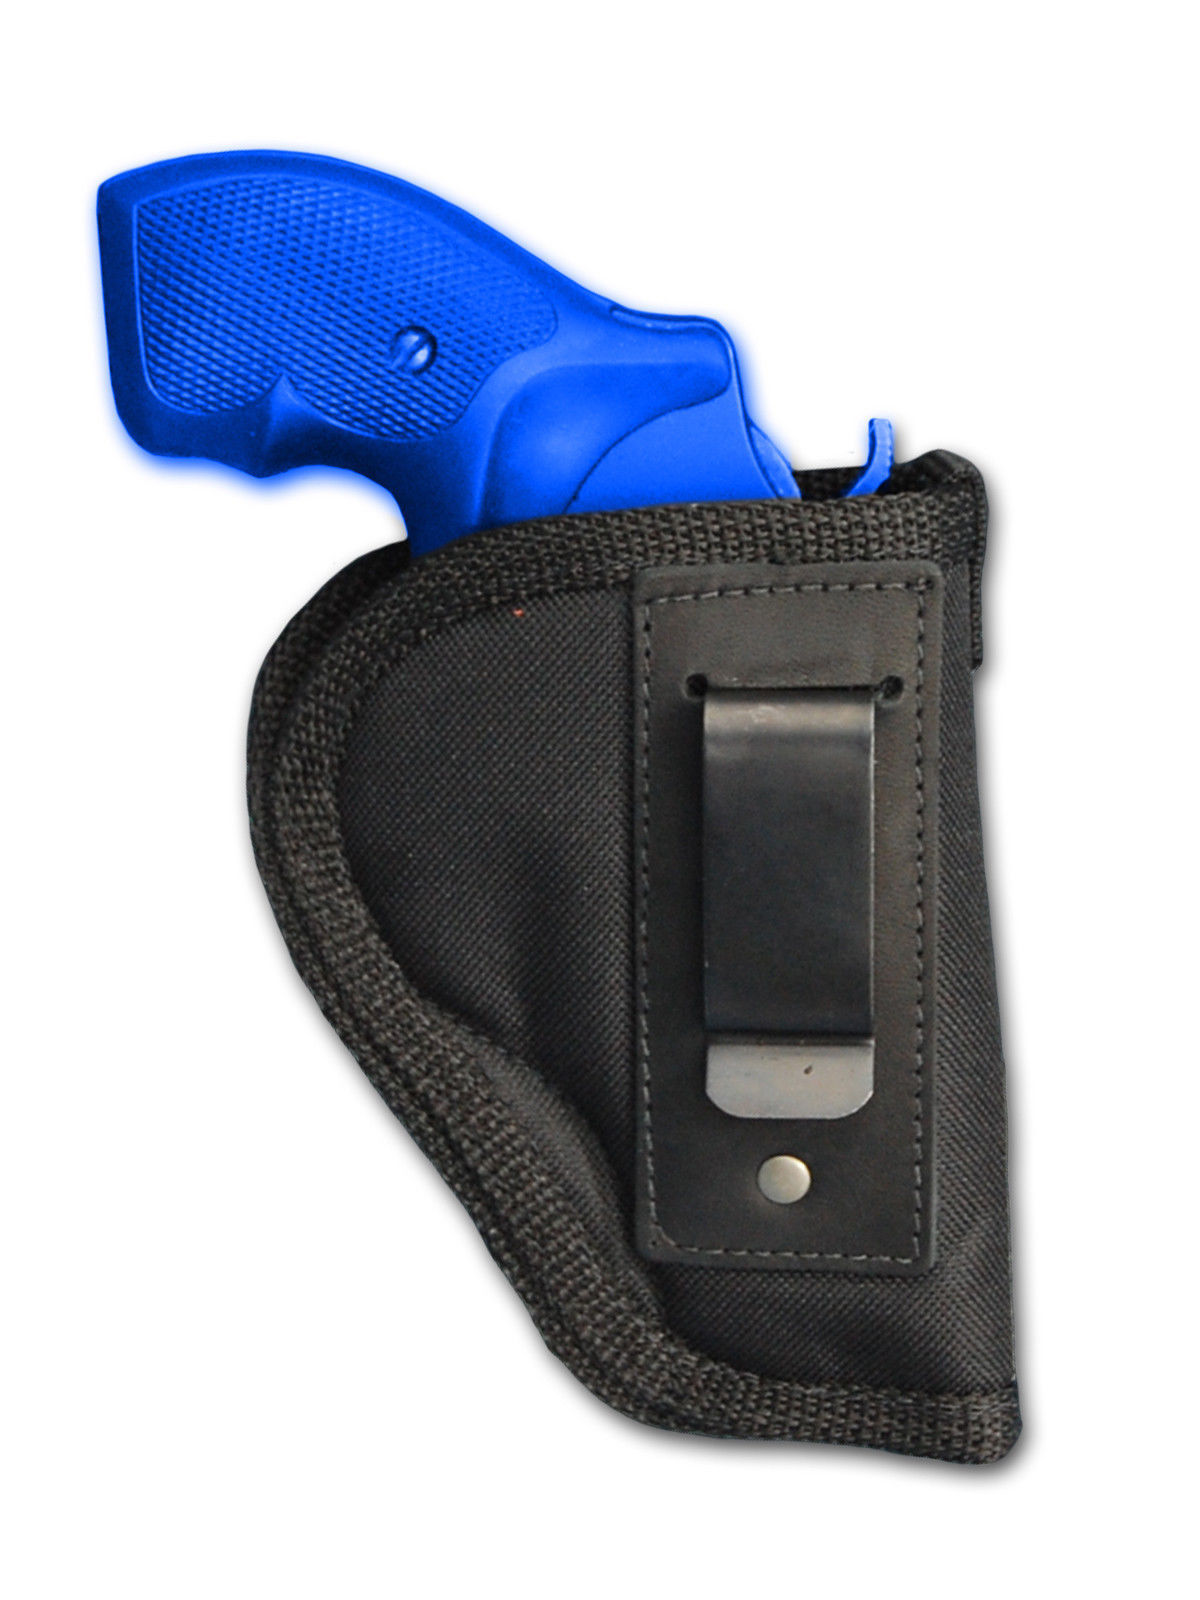 "Barsony IWB Gun Concealment Holster for Charter Arms 2"" Snub Nose Revolvers"